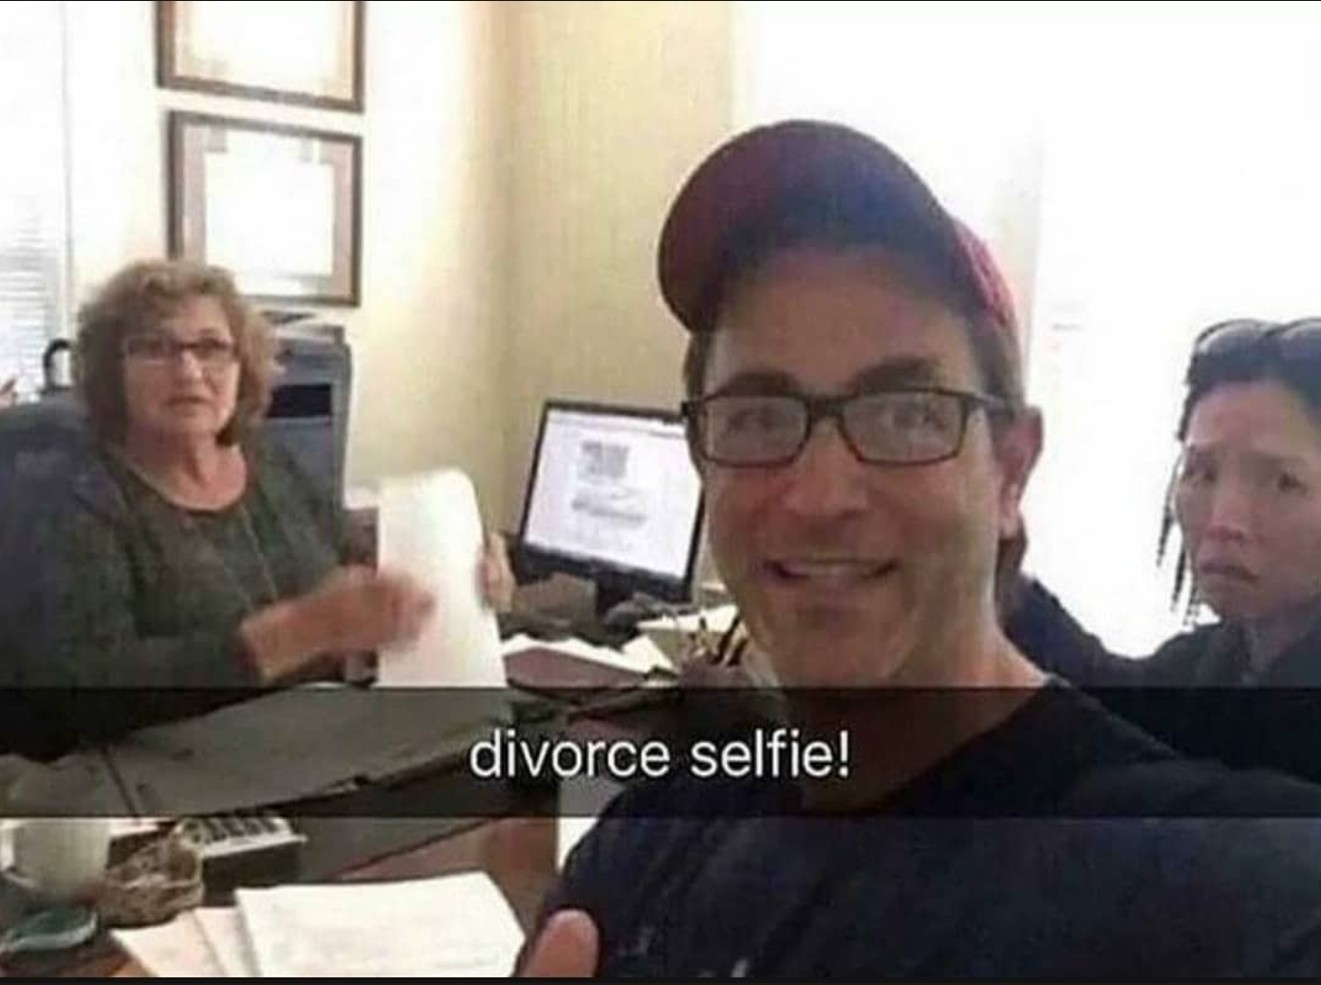 divorce selfie lol - meme